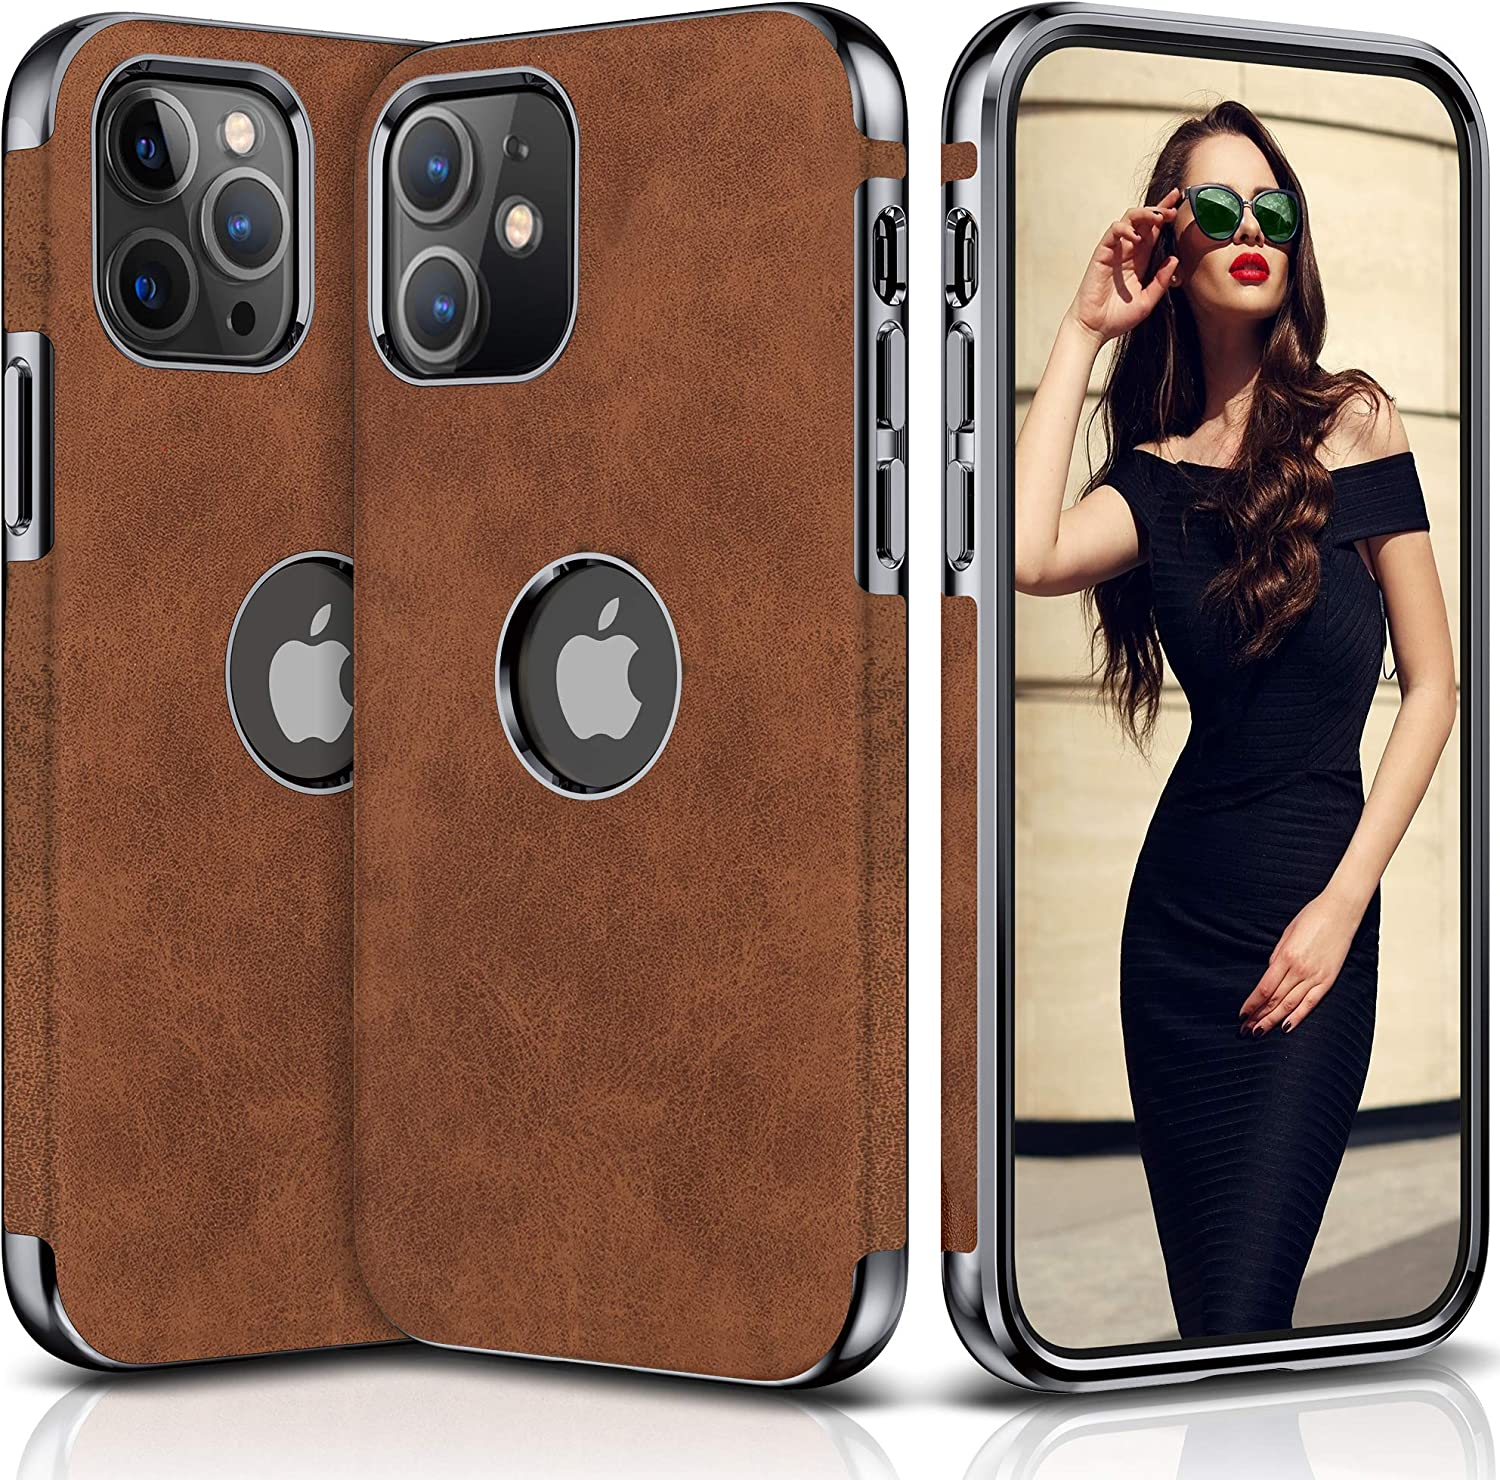 "LOHASIC Case for iPhone 12 Designed for iPhone 12 Pro Case, Slim Business PU Leather Soft Flexible Shockproof Bumper Protective Cover Cases Compatible with iPhone 12/12 Pro 6.1"" (2020) - Brown"